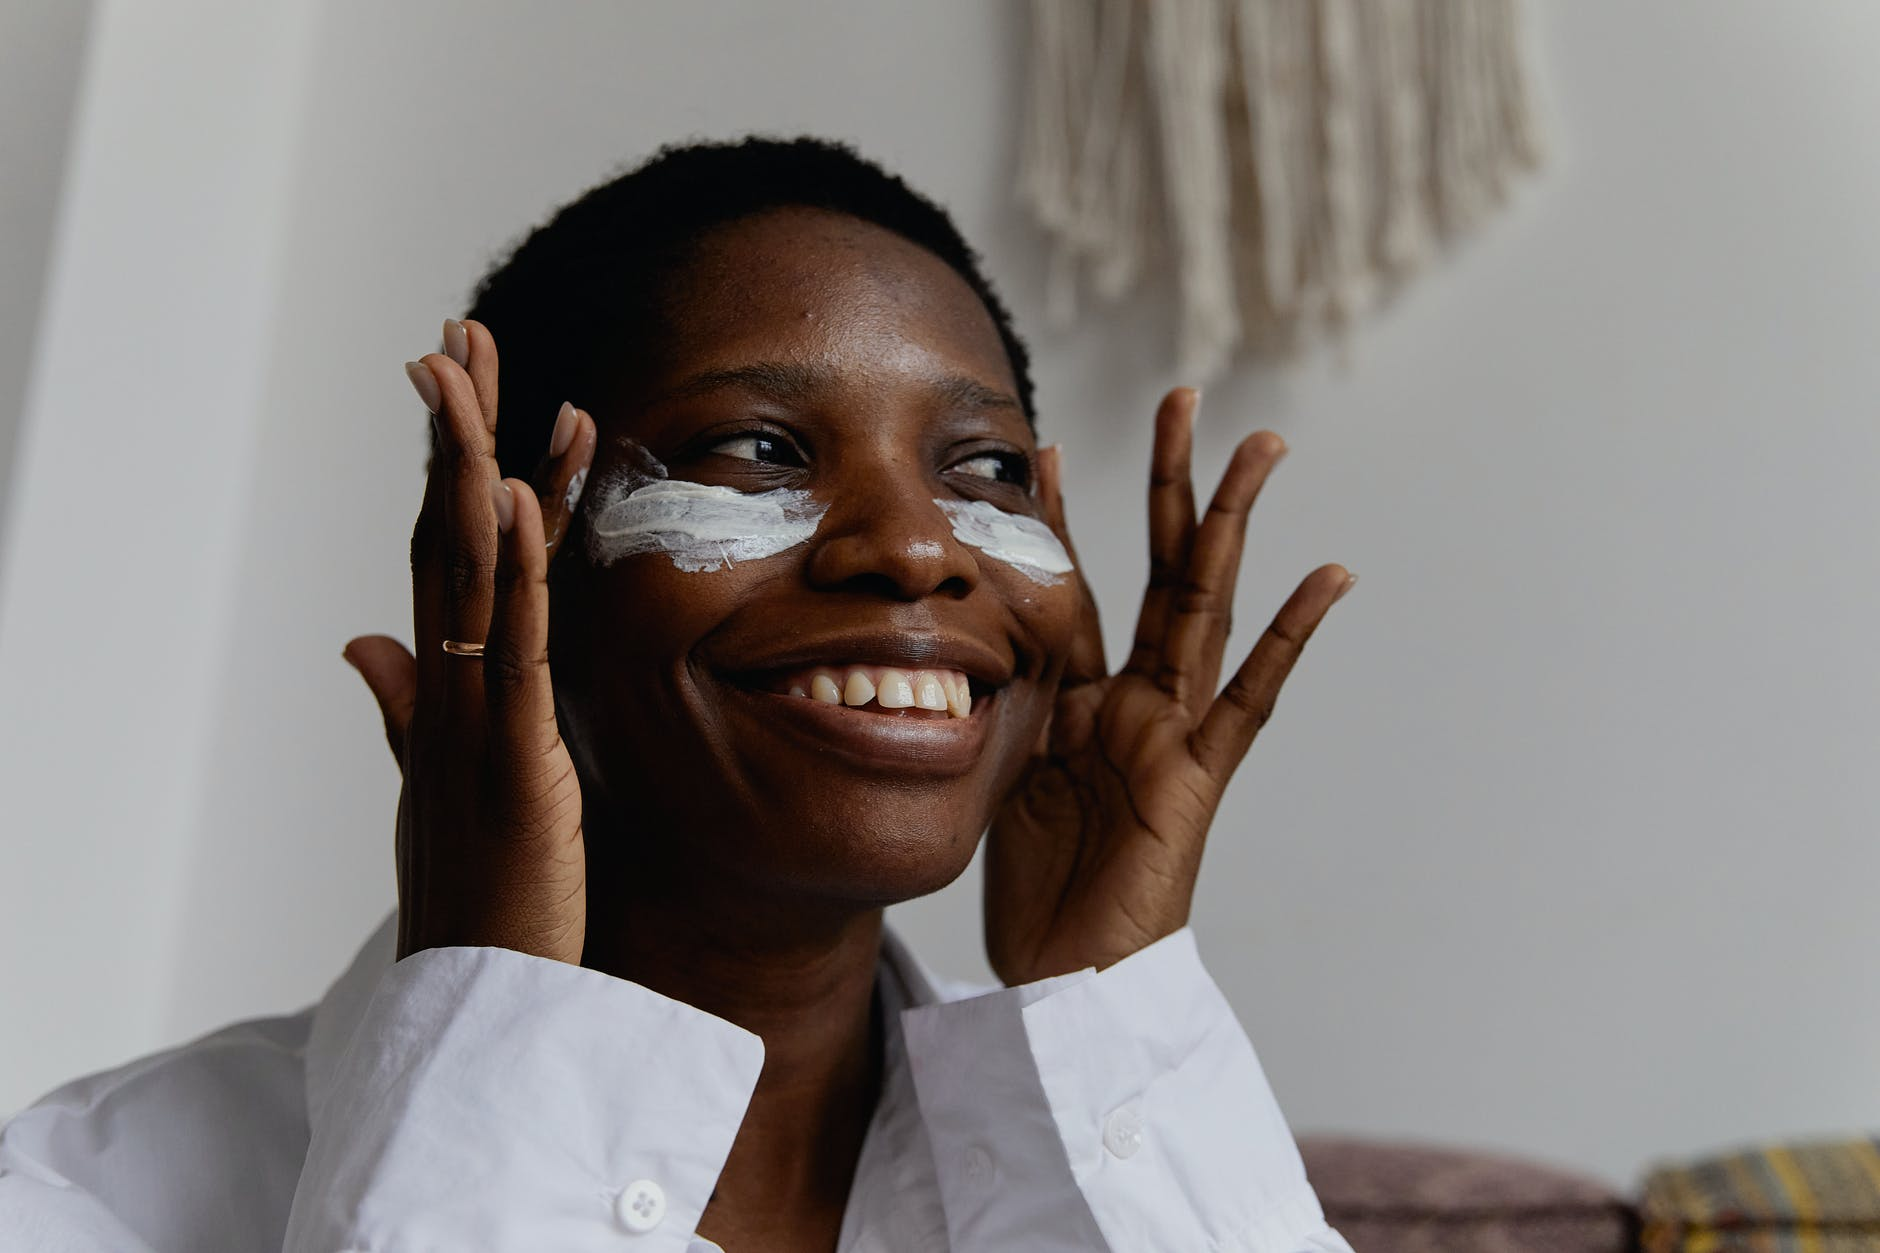 Woman smiling and putting face cream   Source: Pexels